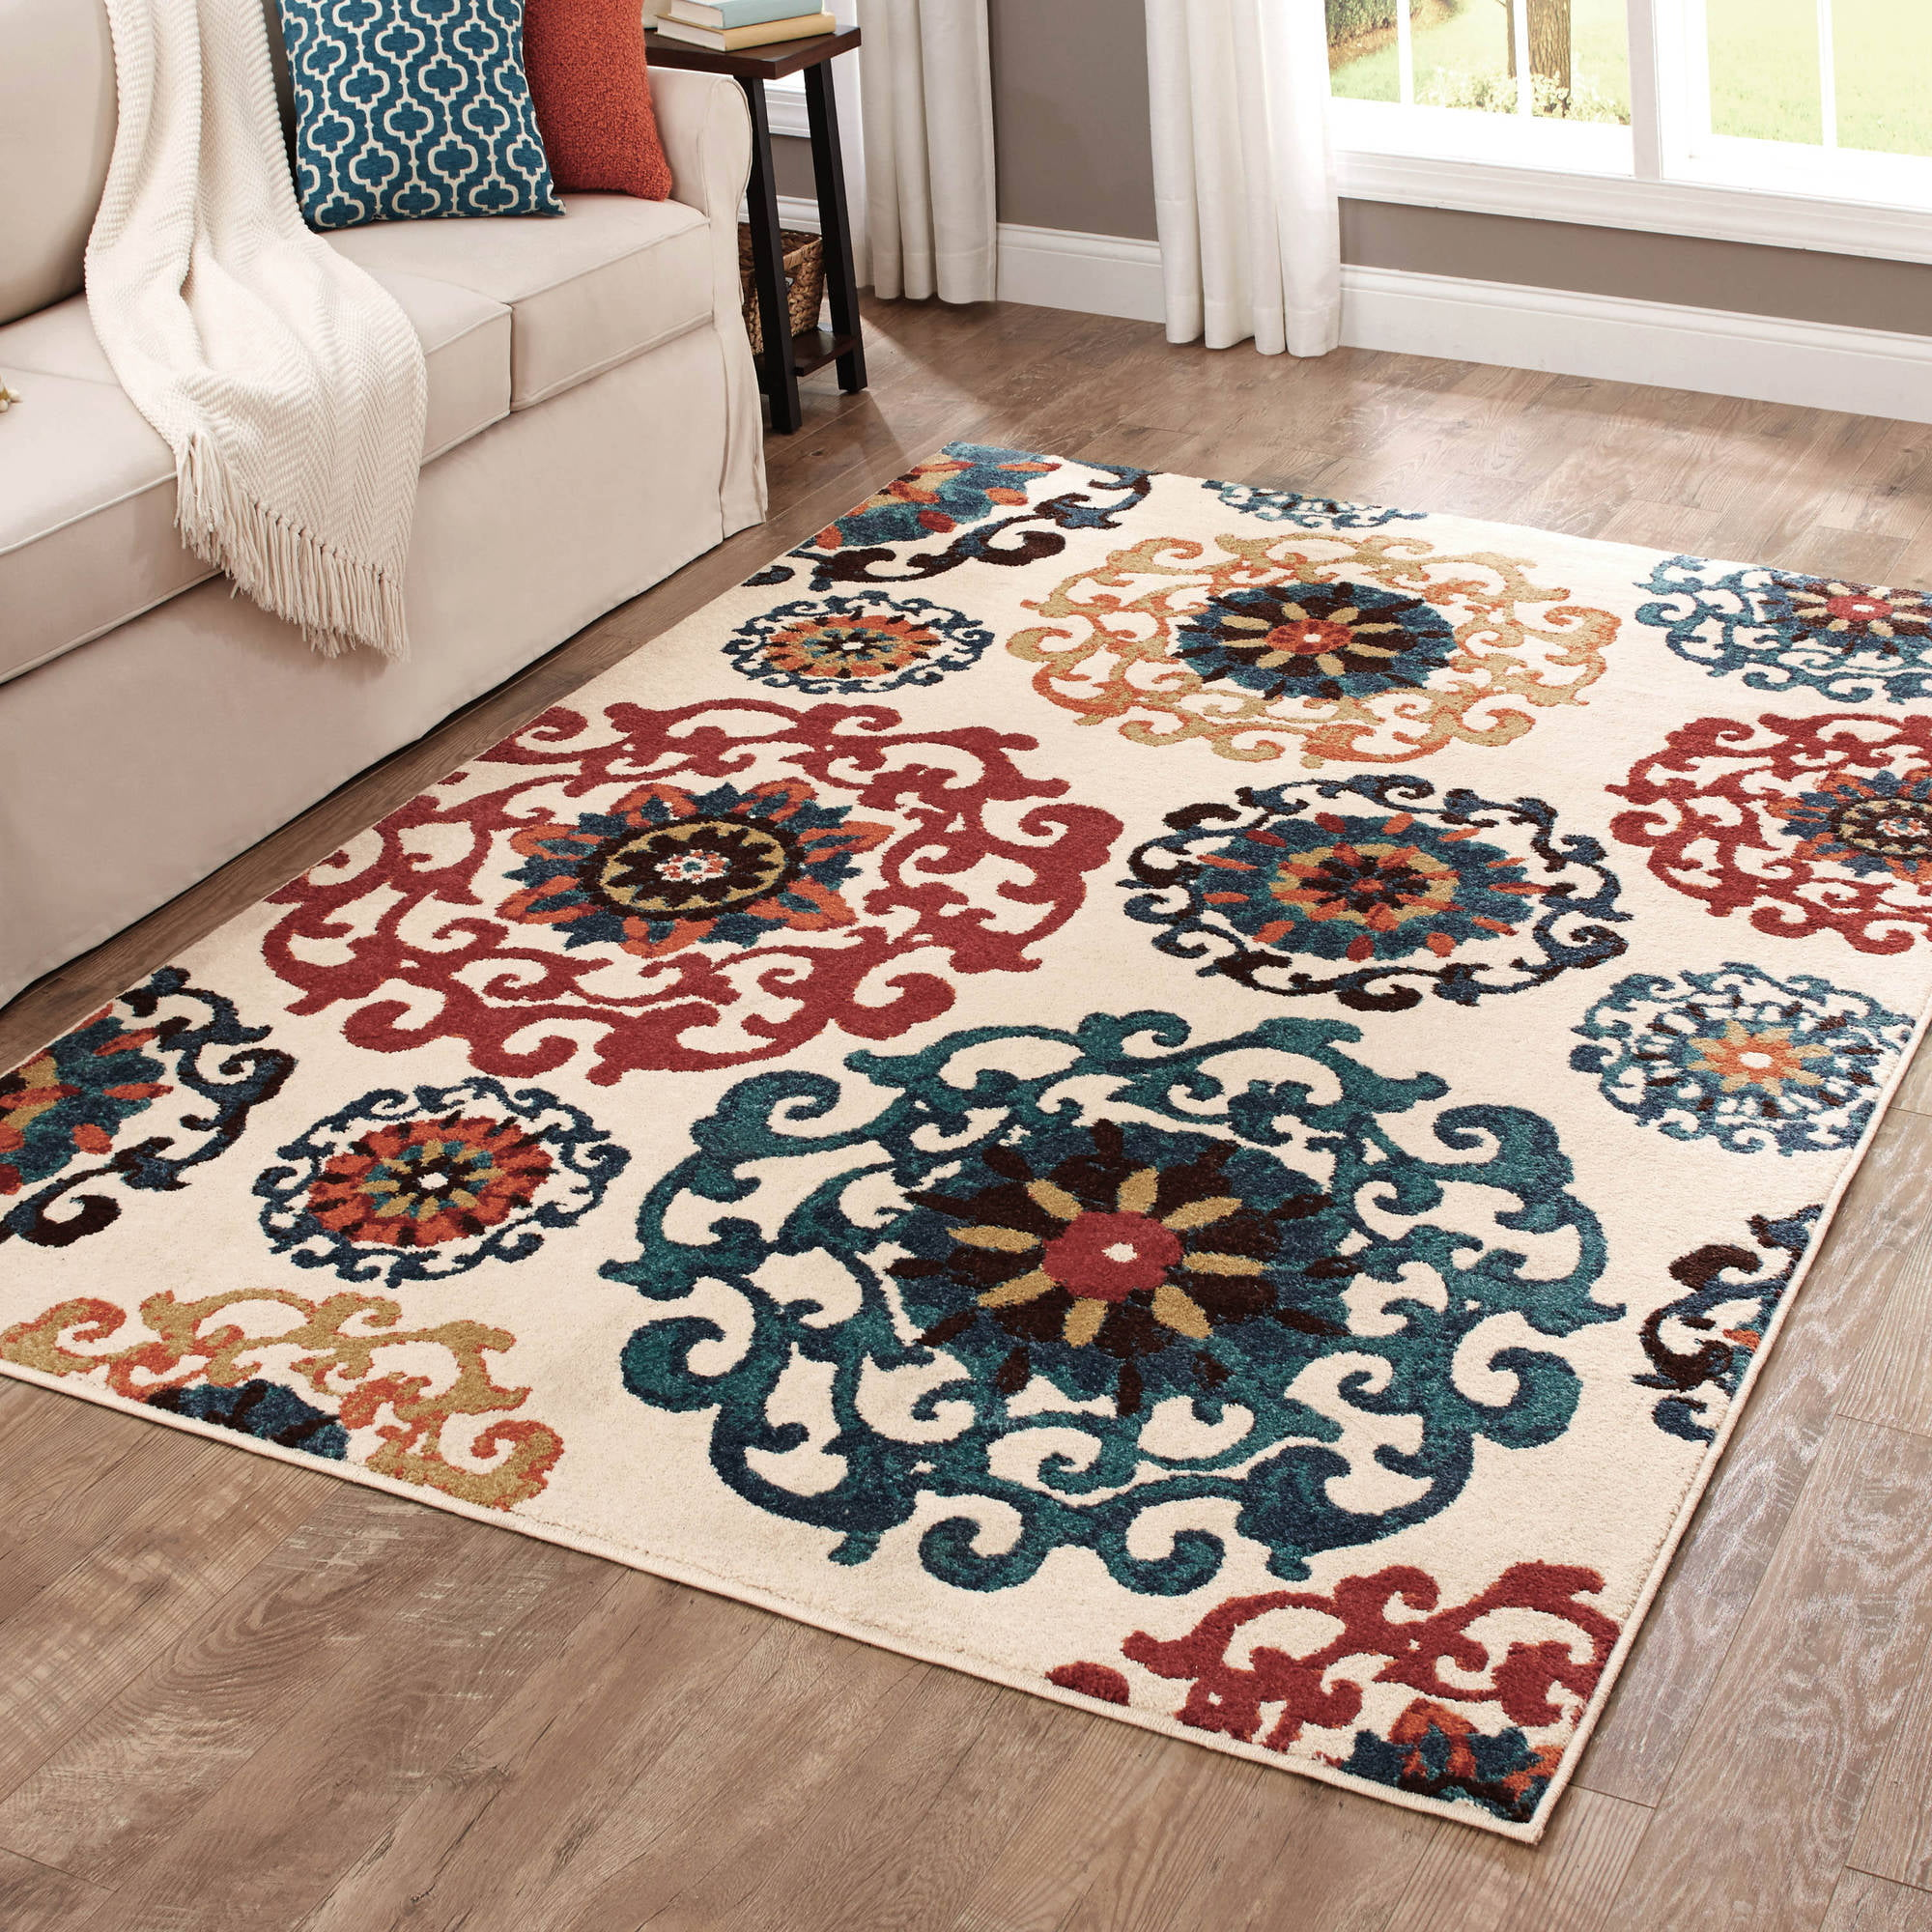 Awesome Safavieh Porcello Harding Abstract Brush Strokes Area Rug Download Free Architecture Designs Embacsunscenecom